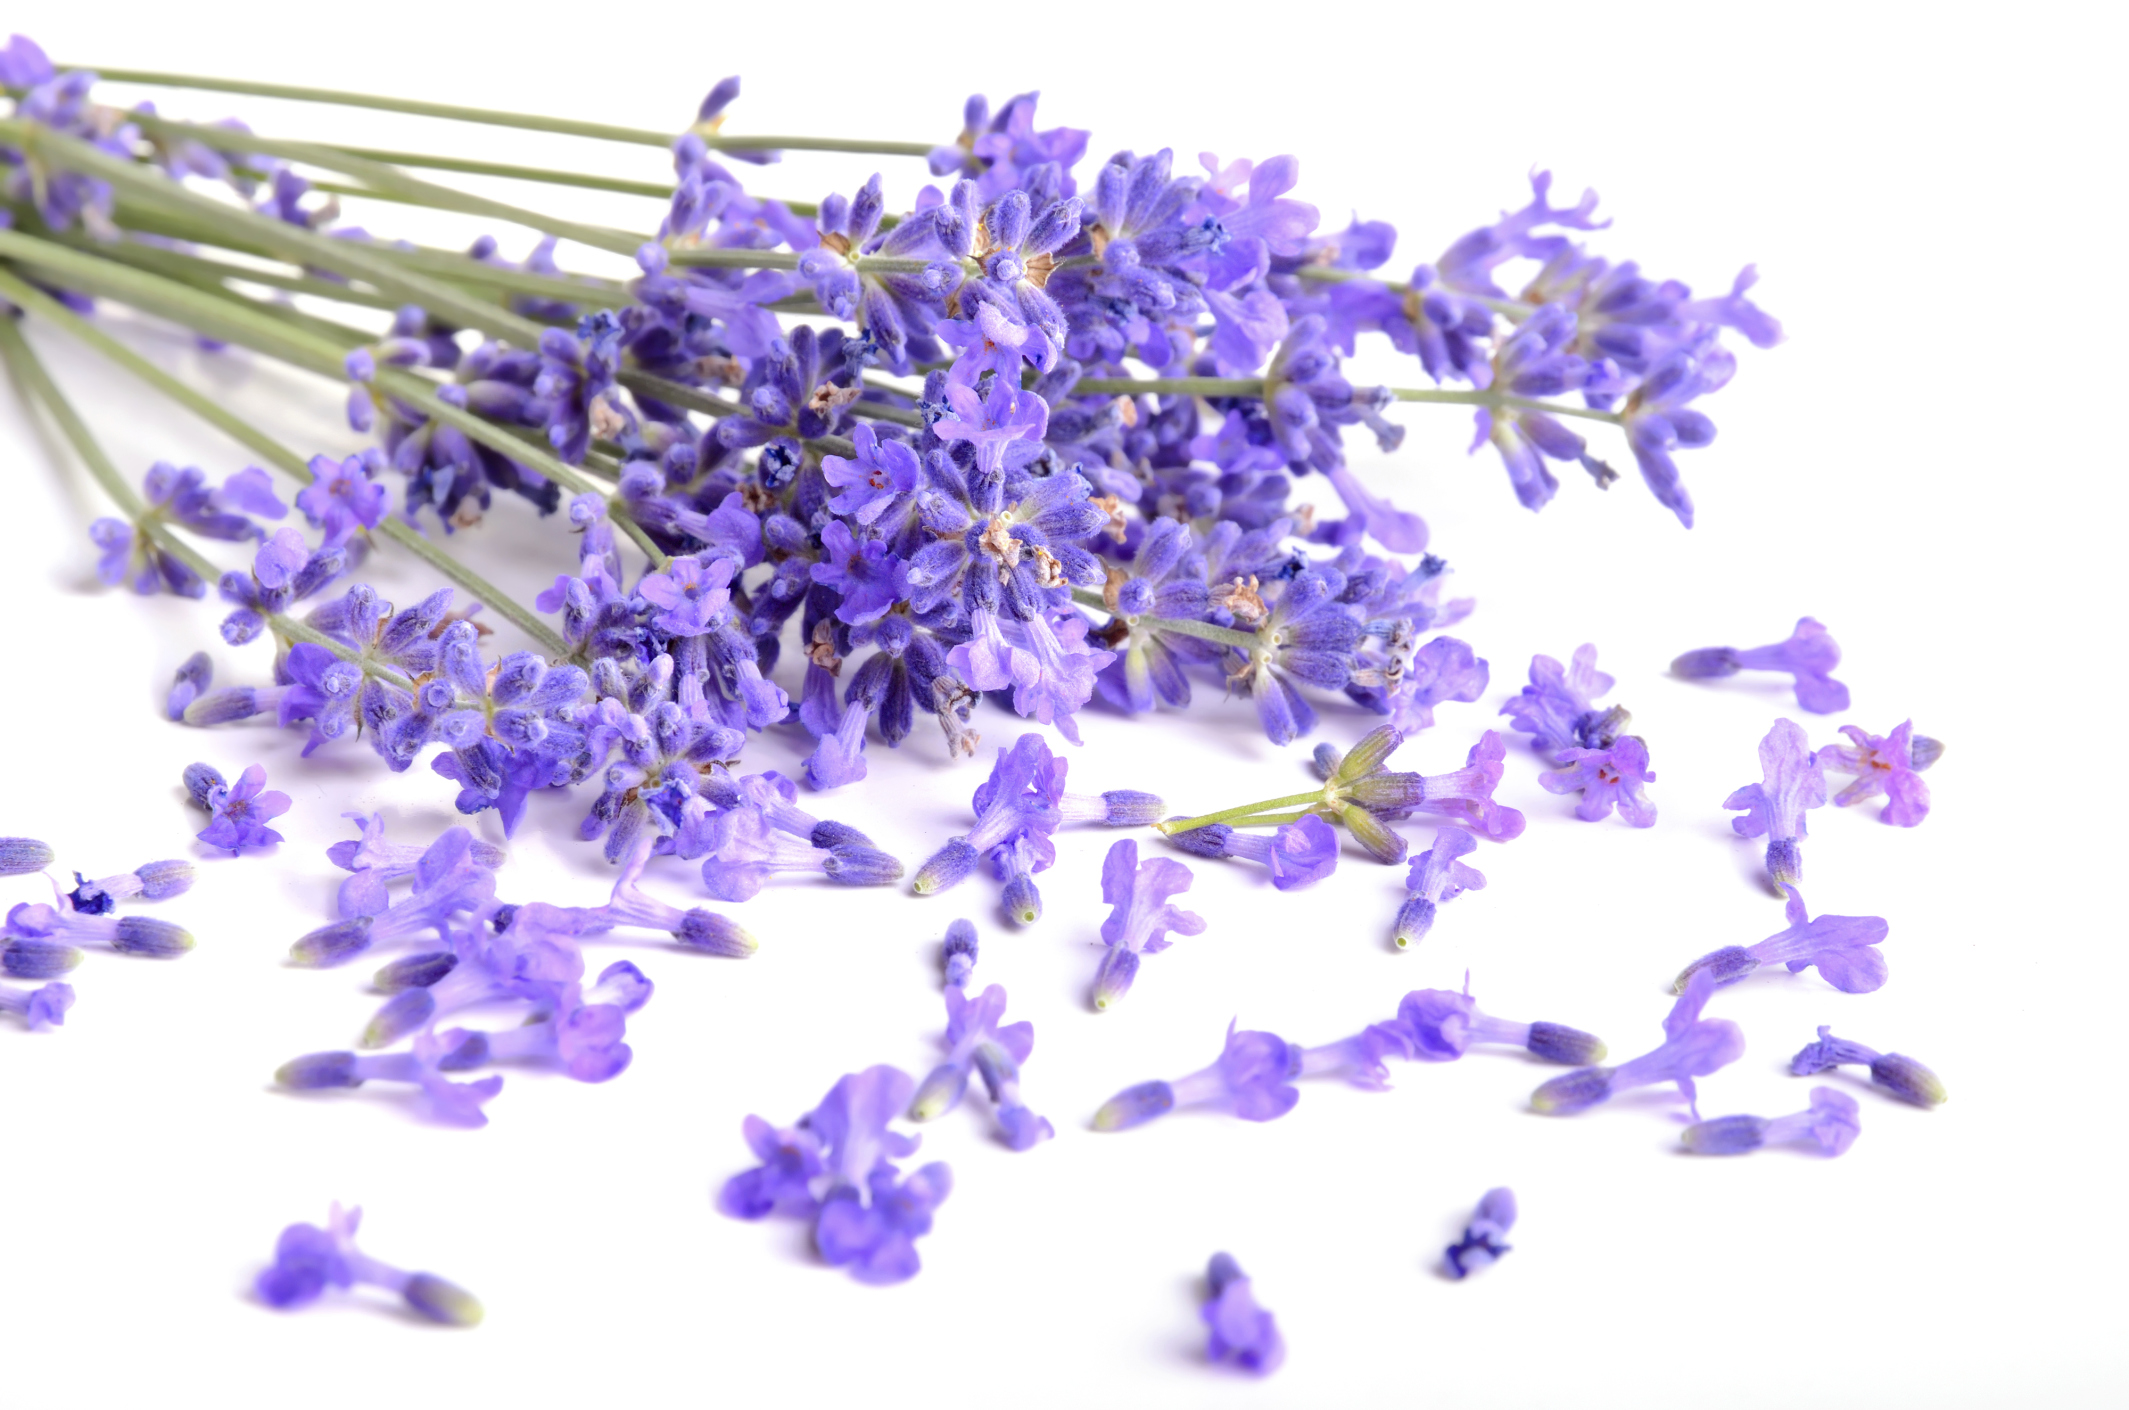 Lavender is a great scent for your bedroom as it can help you relax and sleep more easily.